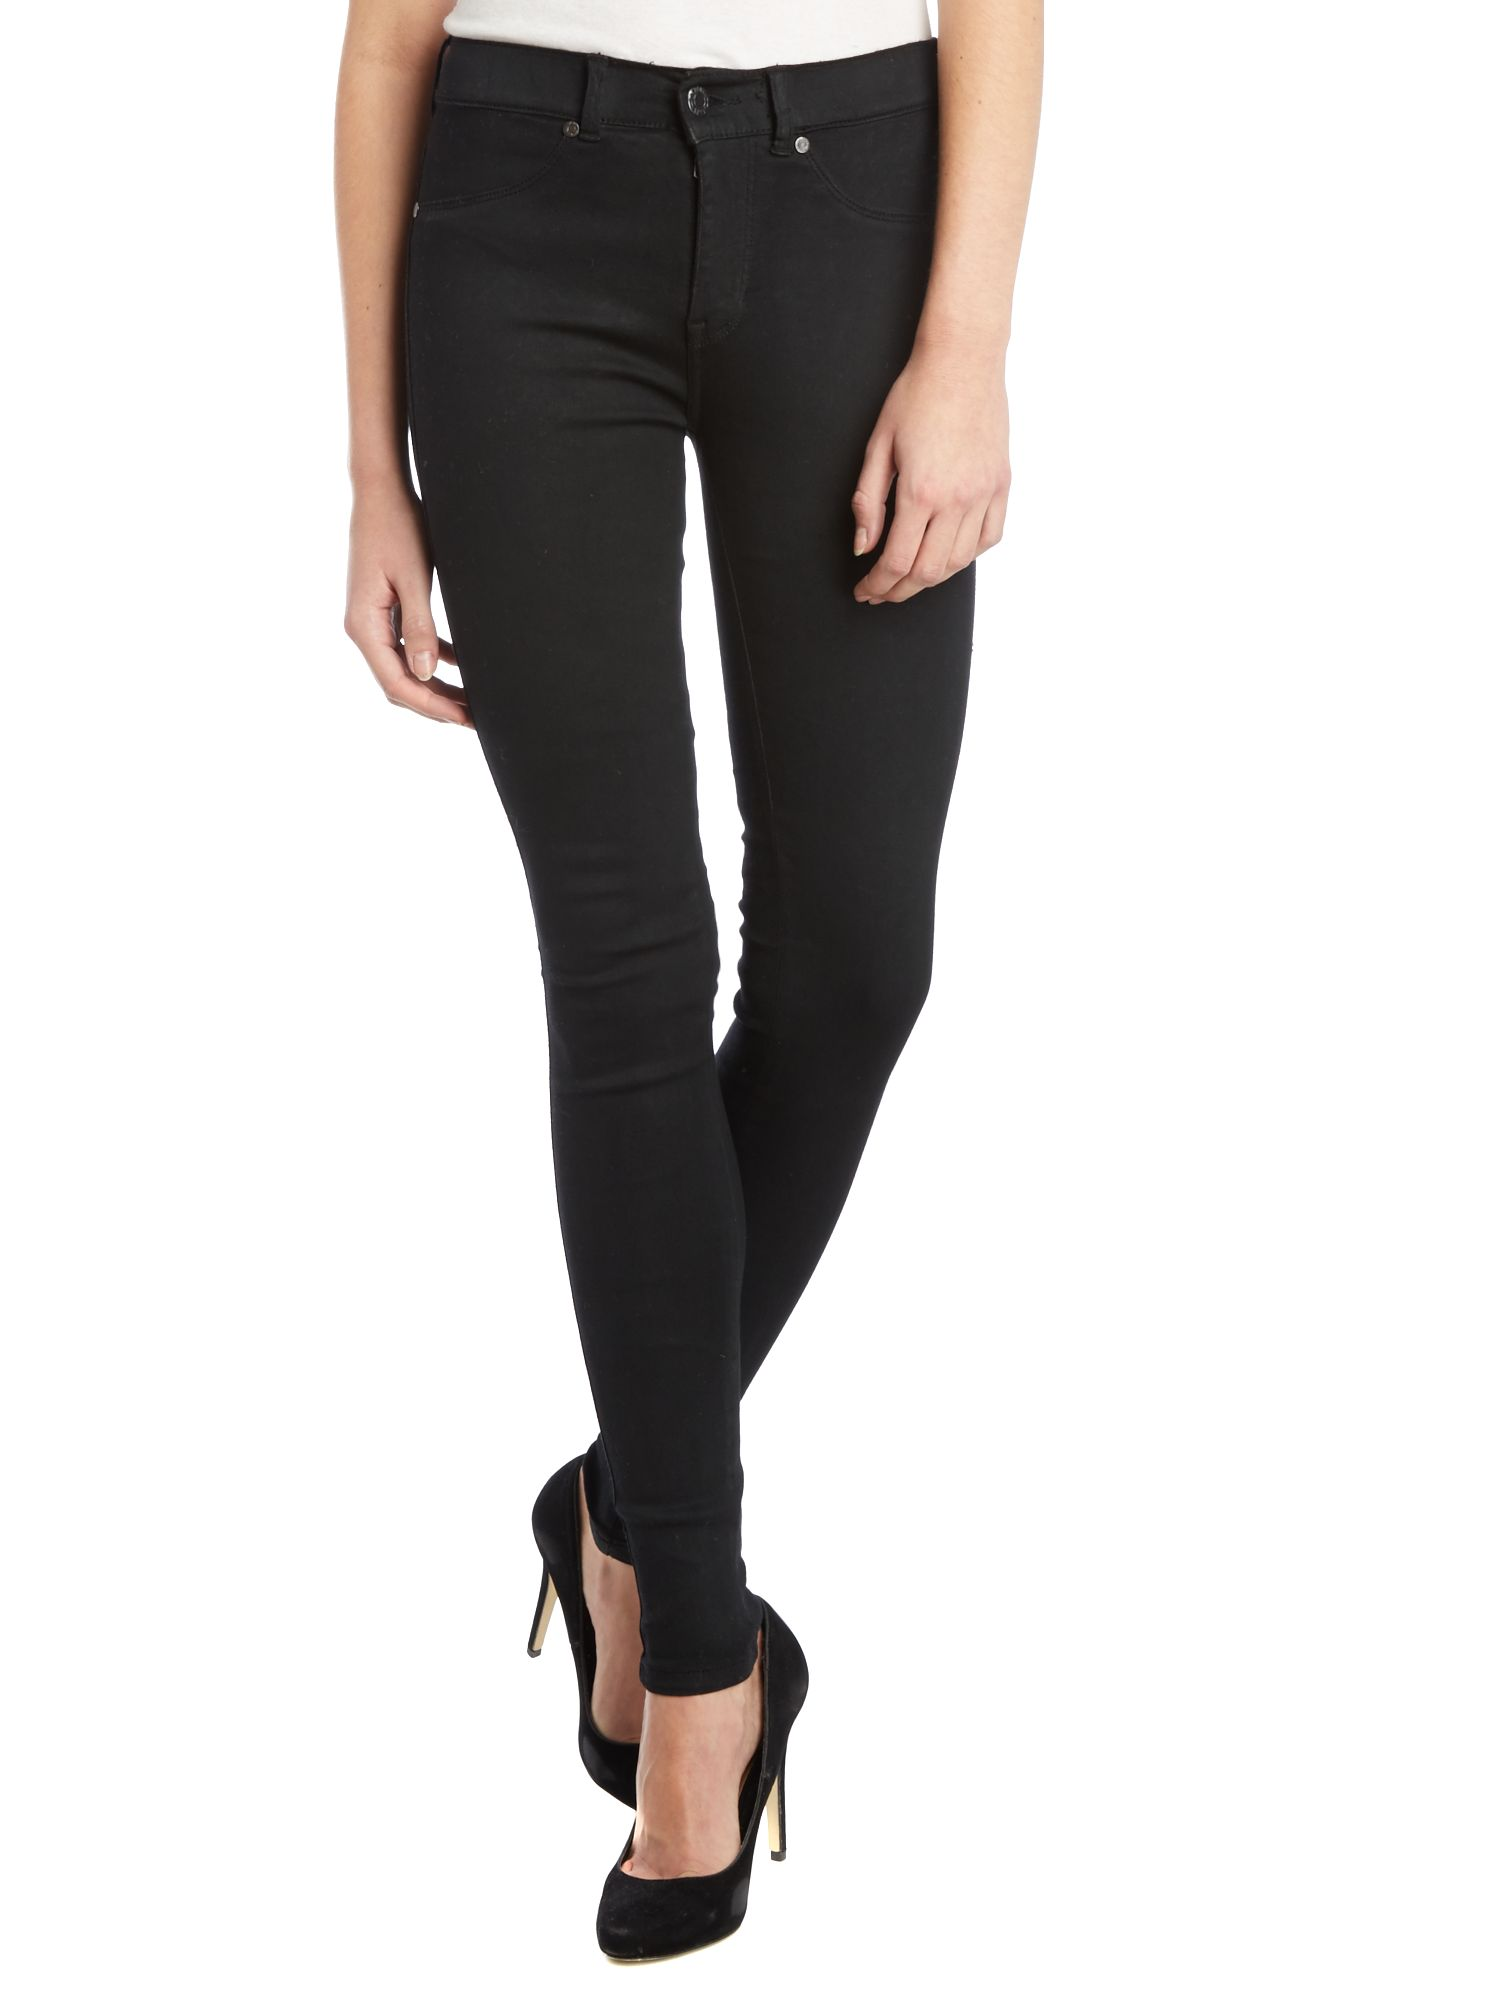 Plenty high-rise skinny jeans in Coated Black